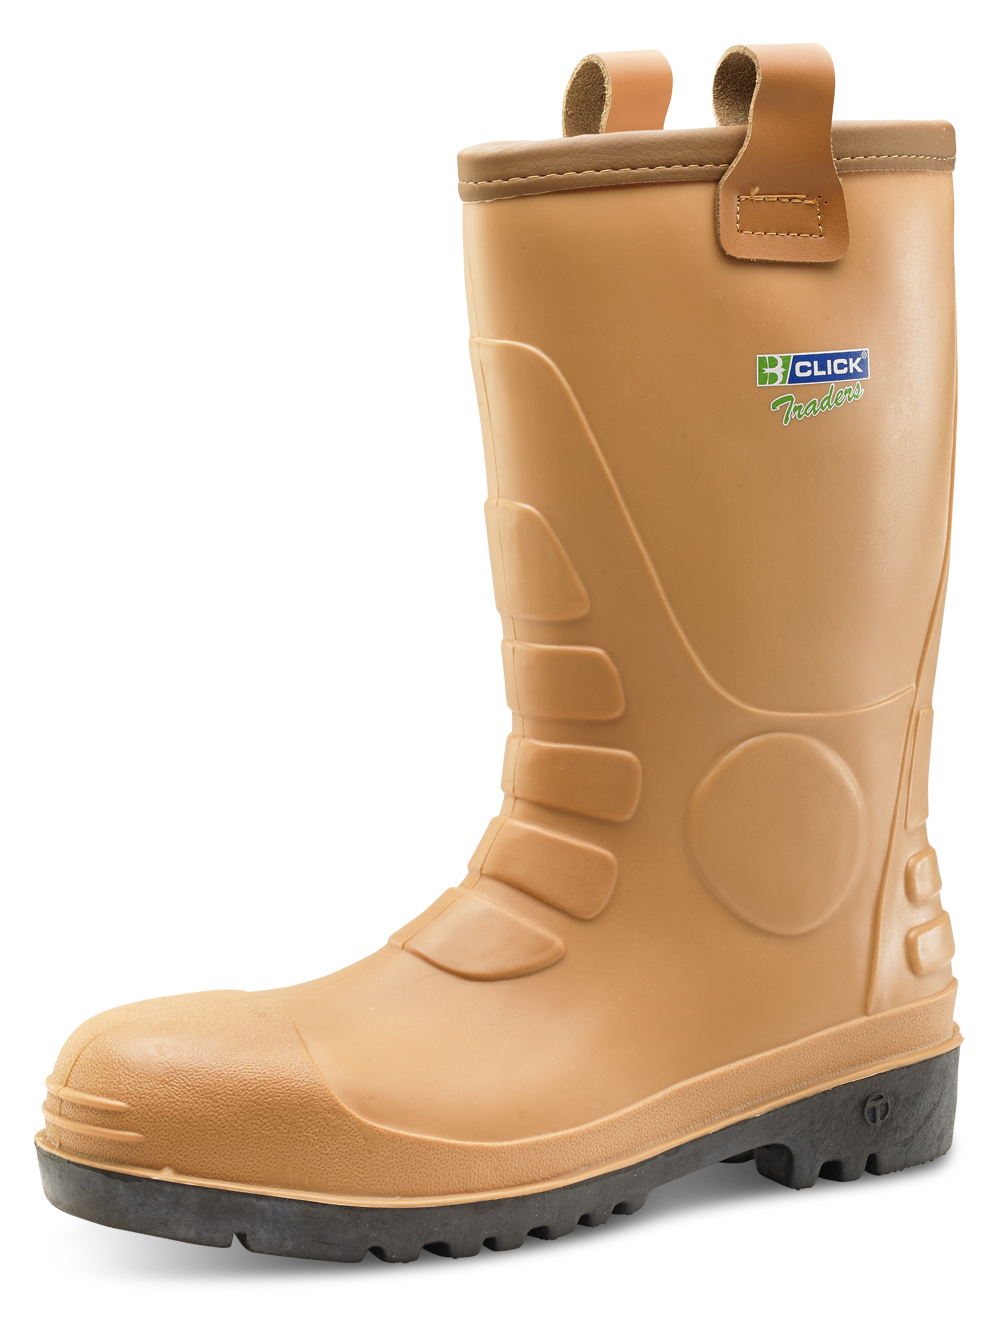 B-Click Traders PU//Rubber S3 Rigger Safety Boots